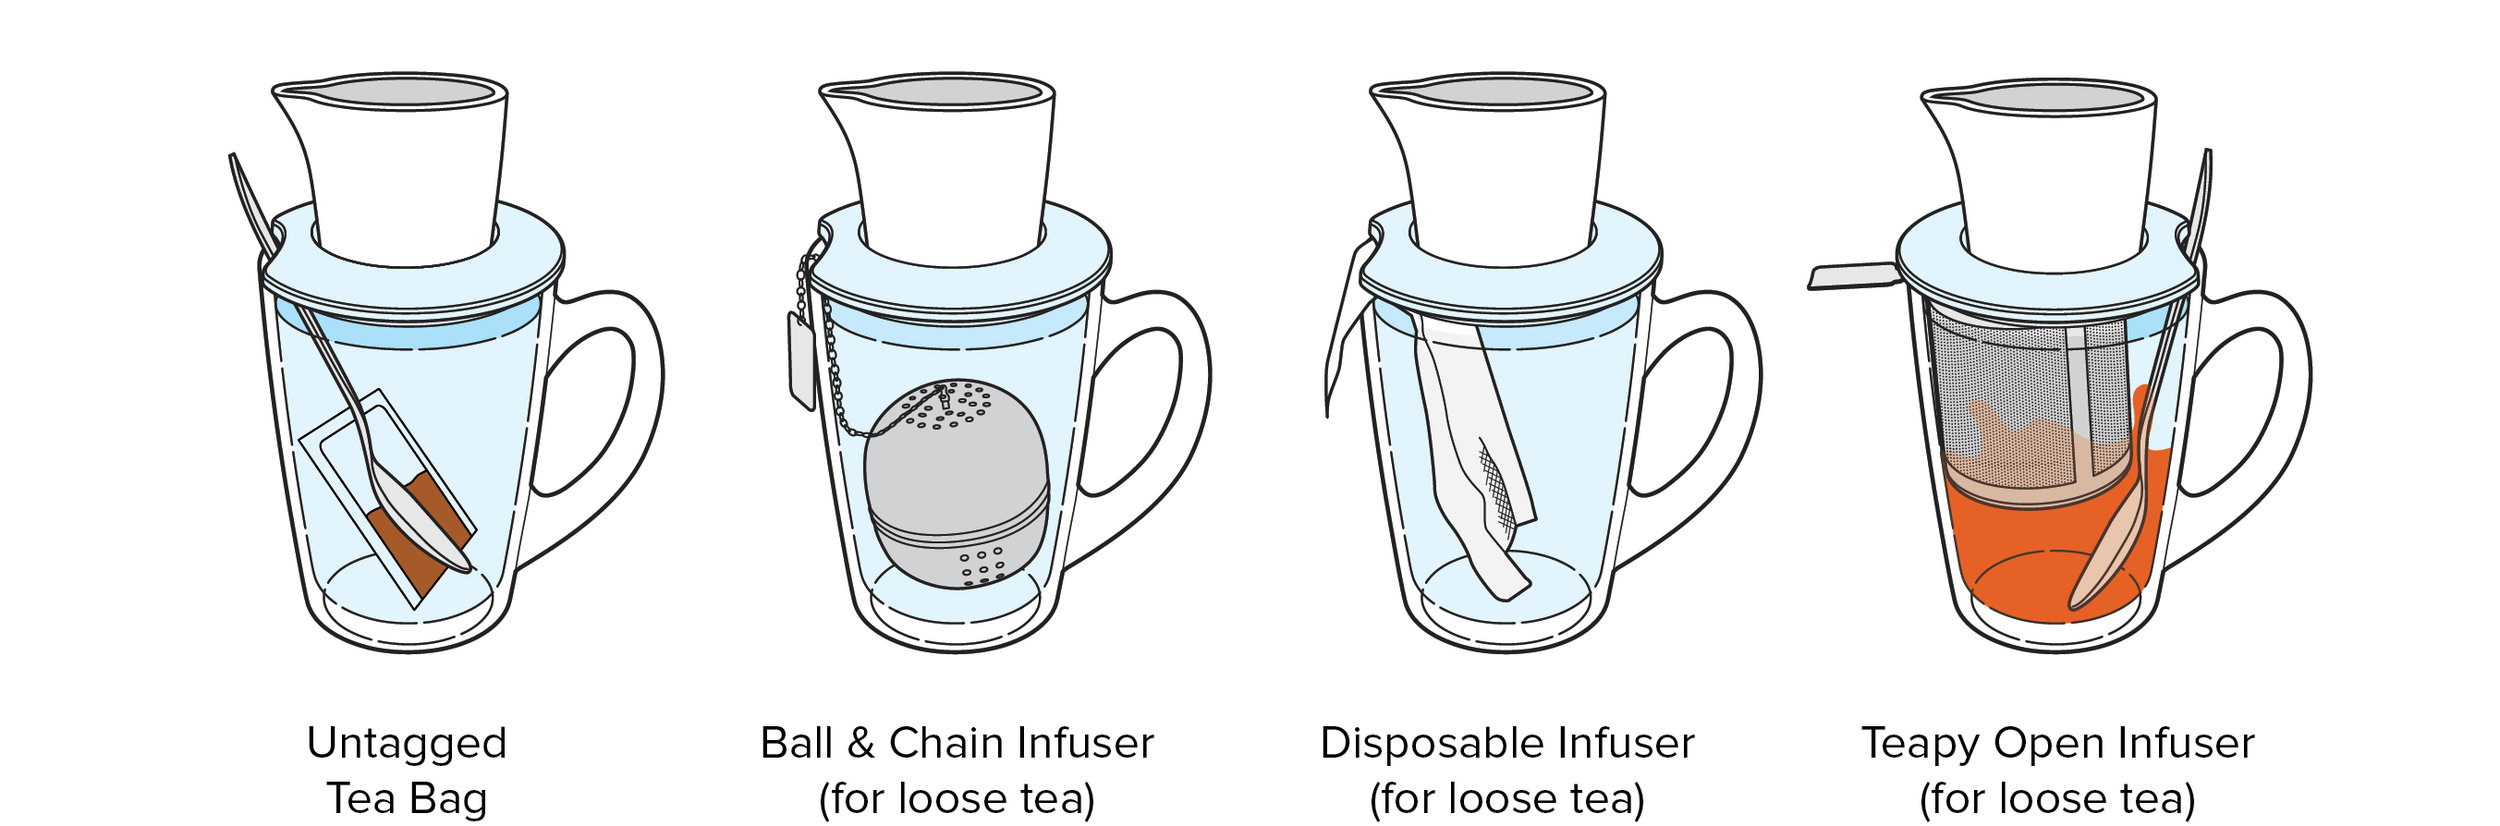 Teapy Diagram with Ceramic Jug-05.jpg